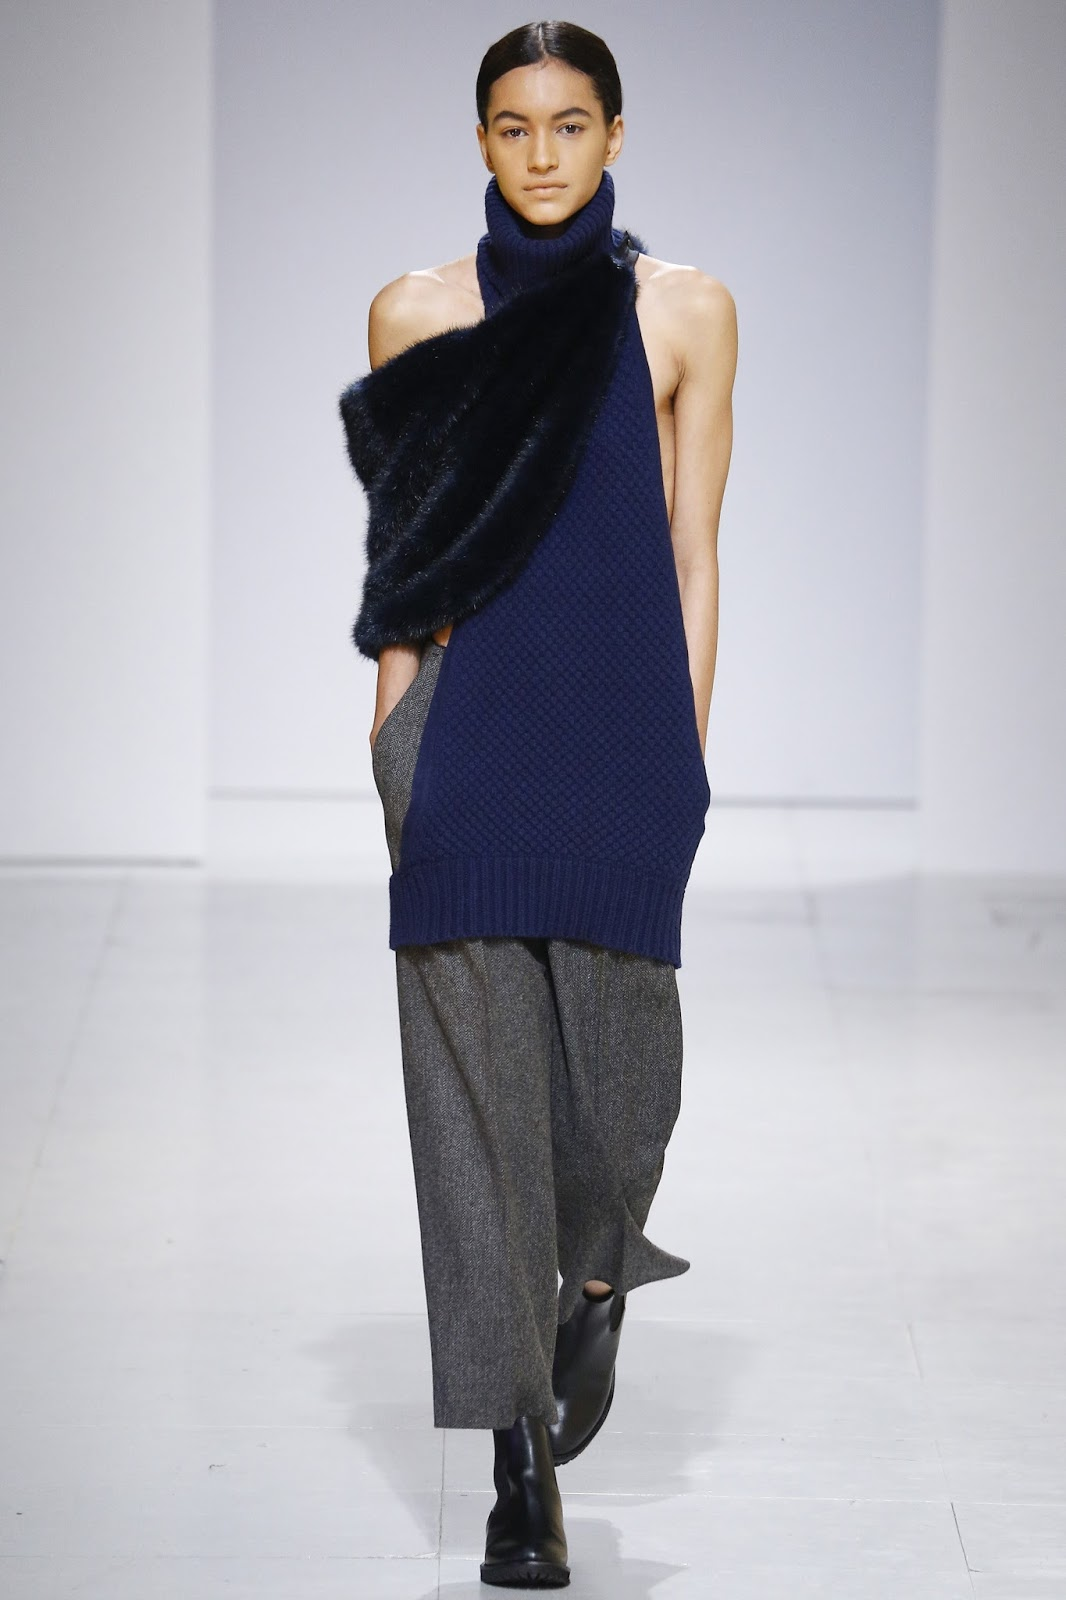 Paris fashion week best collections / Chalayan Fall/Winter 2016 via www.fashionedbylove.co.uk british fashion blog